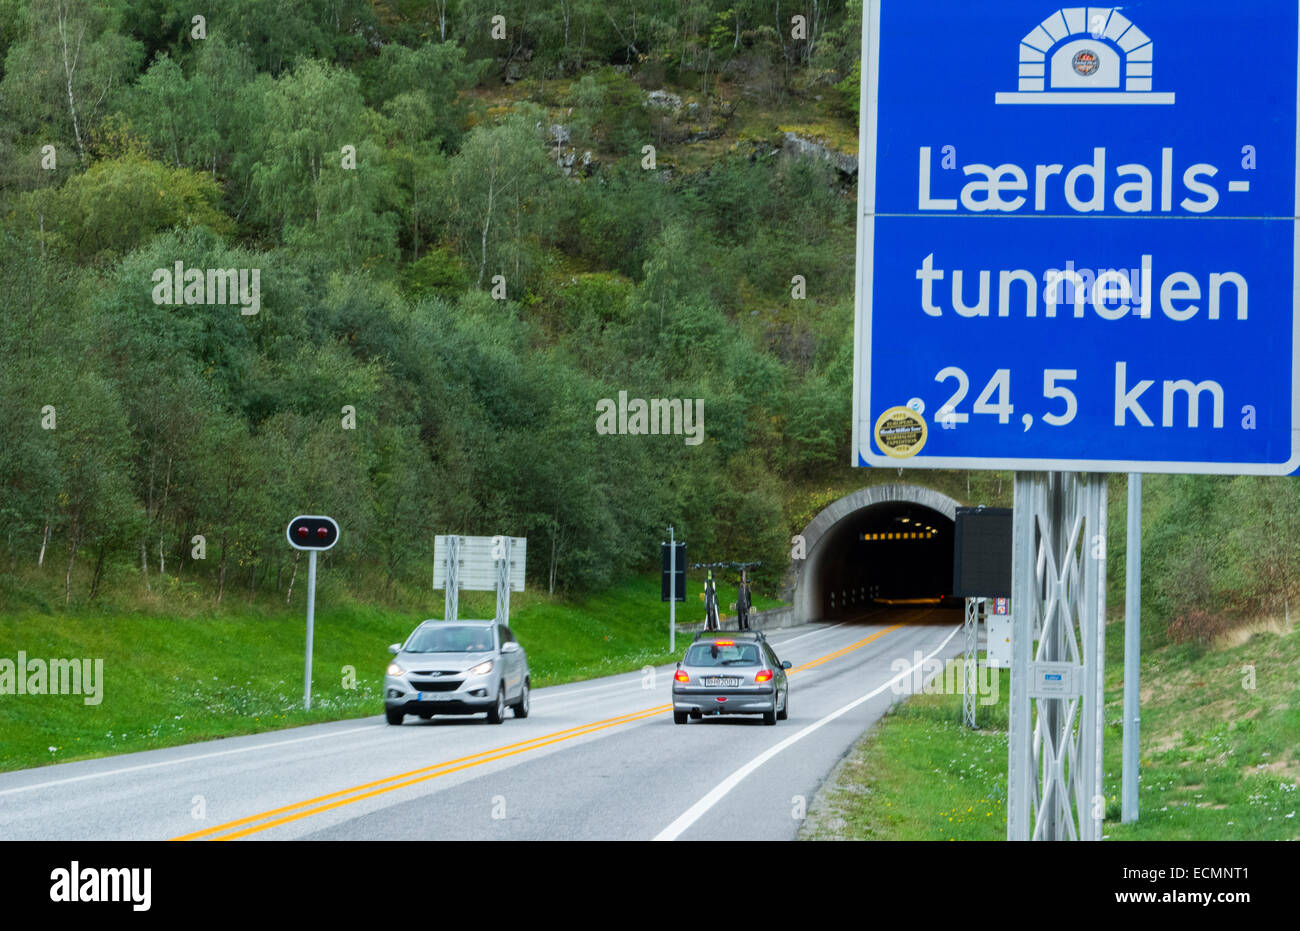 Laerdal Norway tunnel longest tunnel in world at 24.5 km or 15 miles long - Stock Image